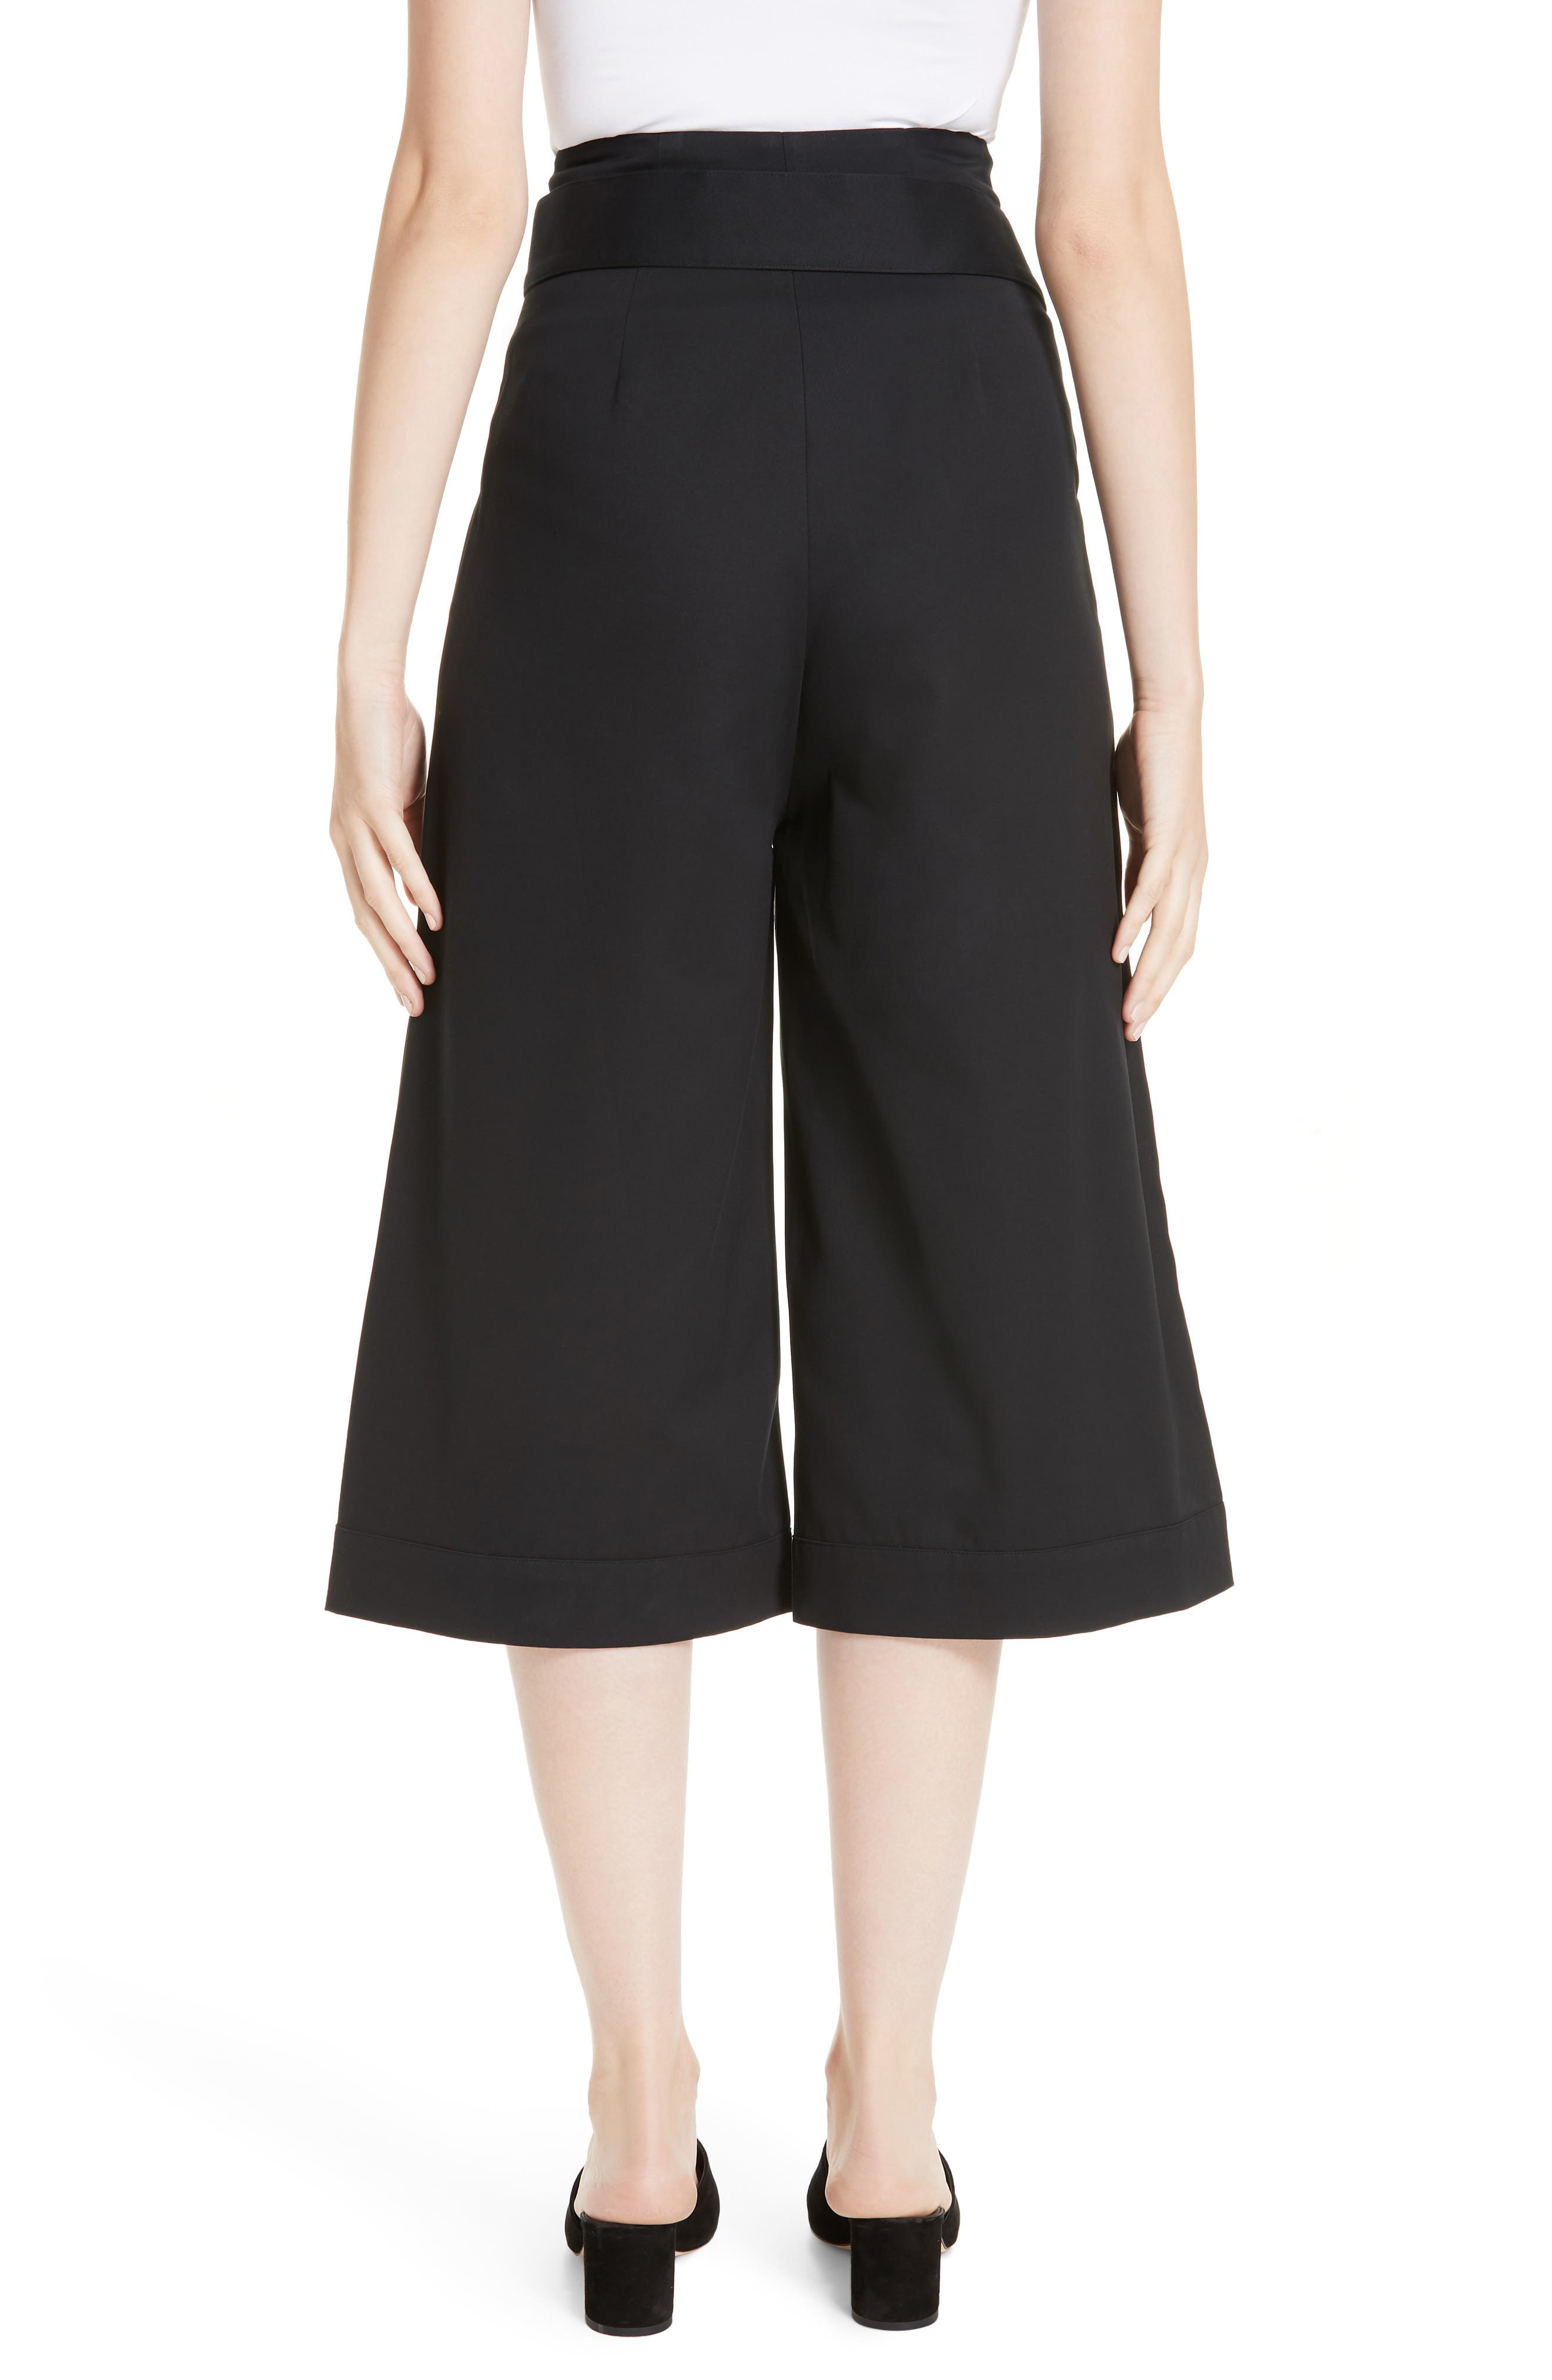 Palmer Harding Distorted Culottes,                             Alternate thumbnail 2, color,                             BLACK COTTON TWILL